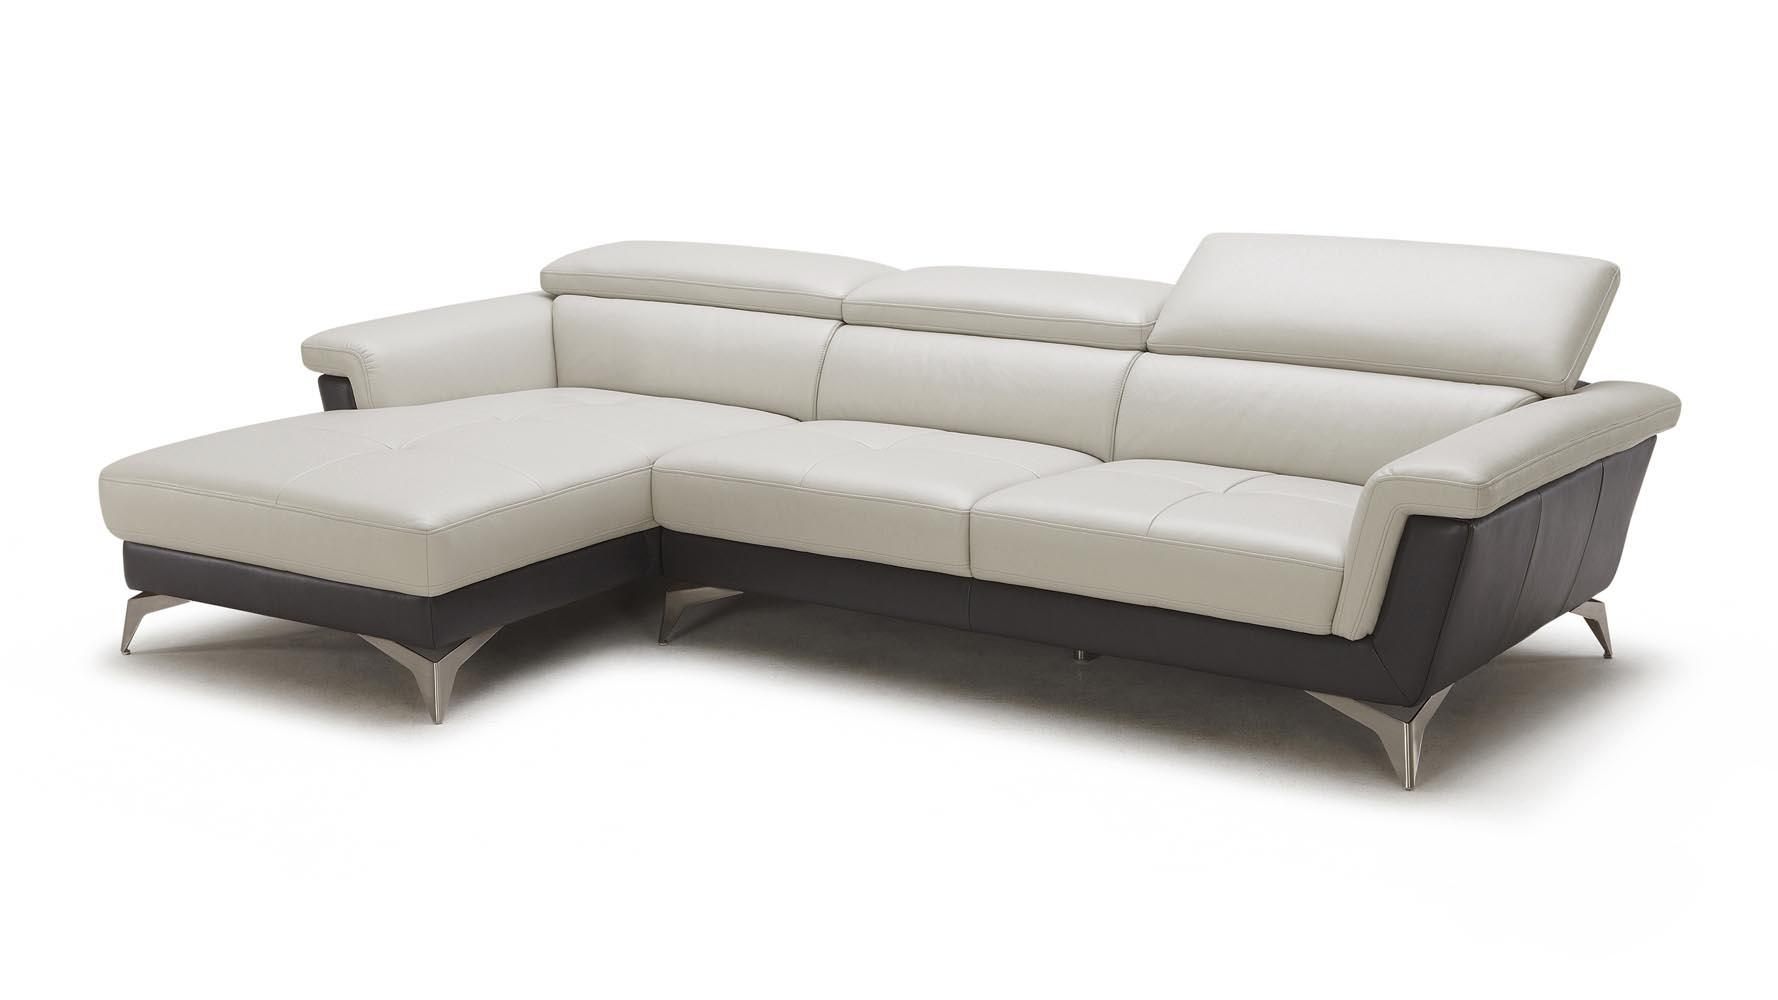 Gray/black Savoy 3 Seater Sectional Sofa | Zuri Furniture With Regard To Savoy Sofas (View 11 of 20)